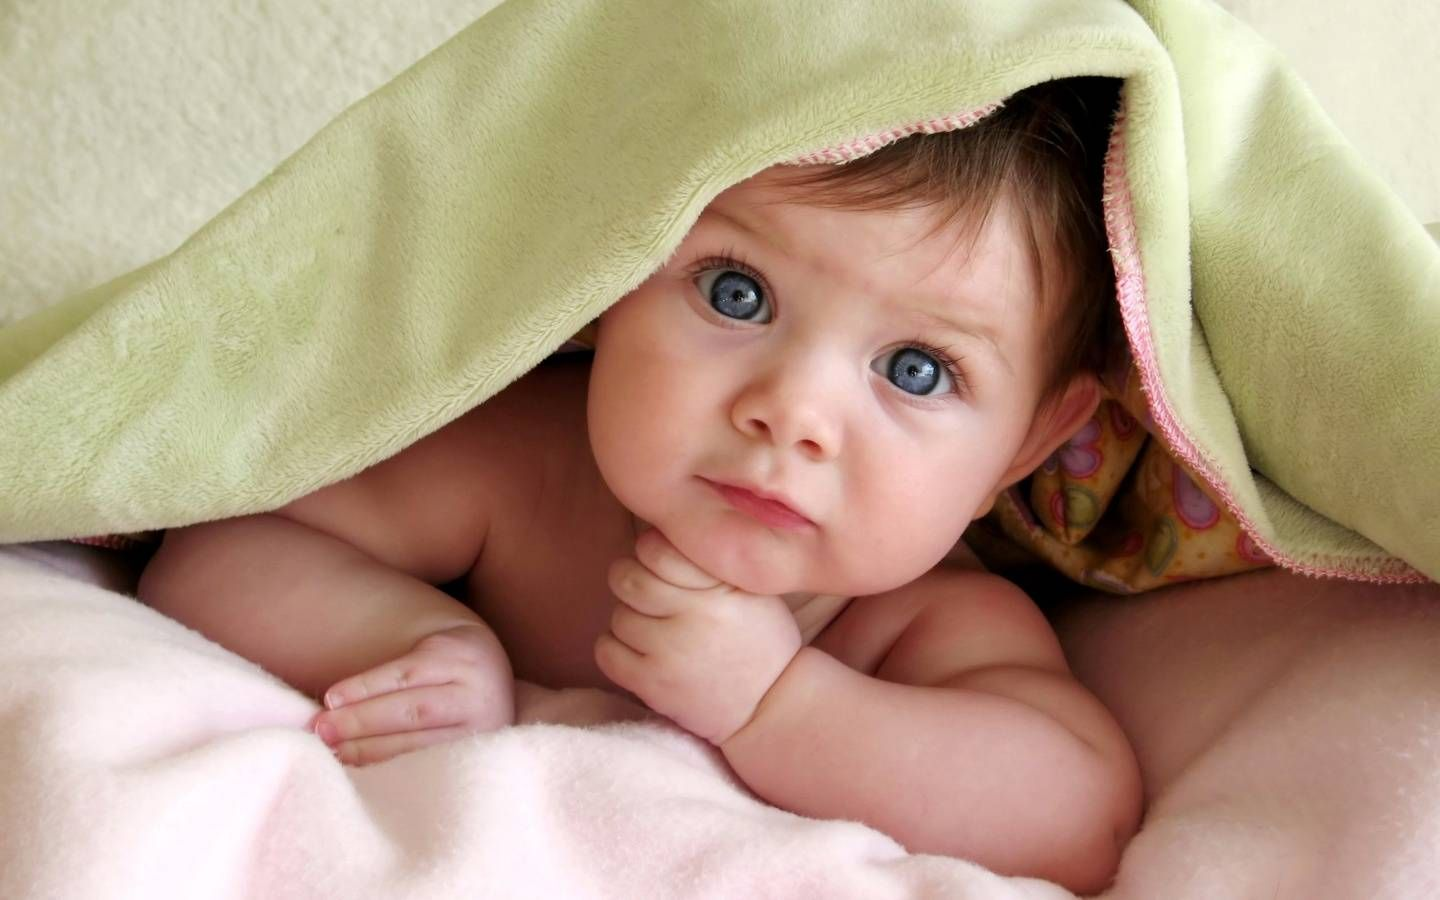 mphoto-cover: cute girl babies wallpapers very cute with quotes